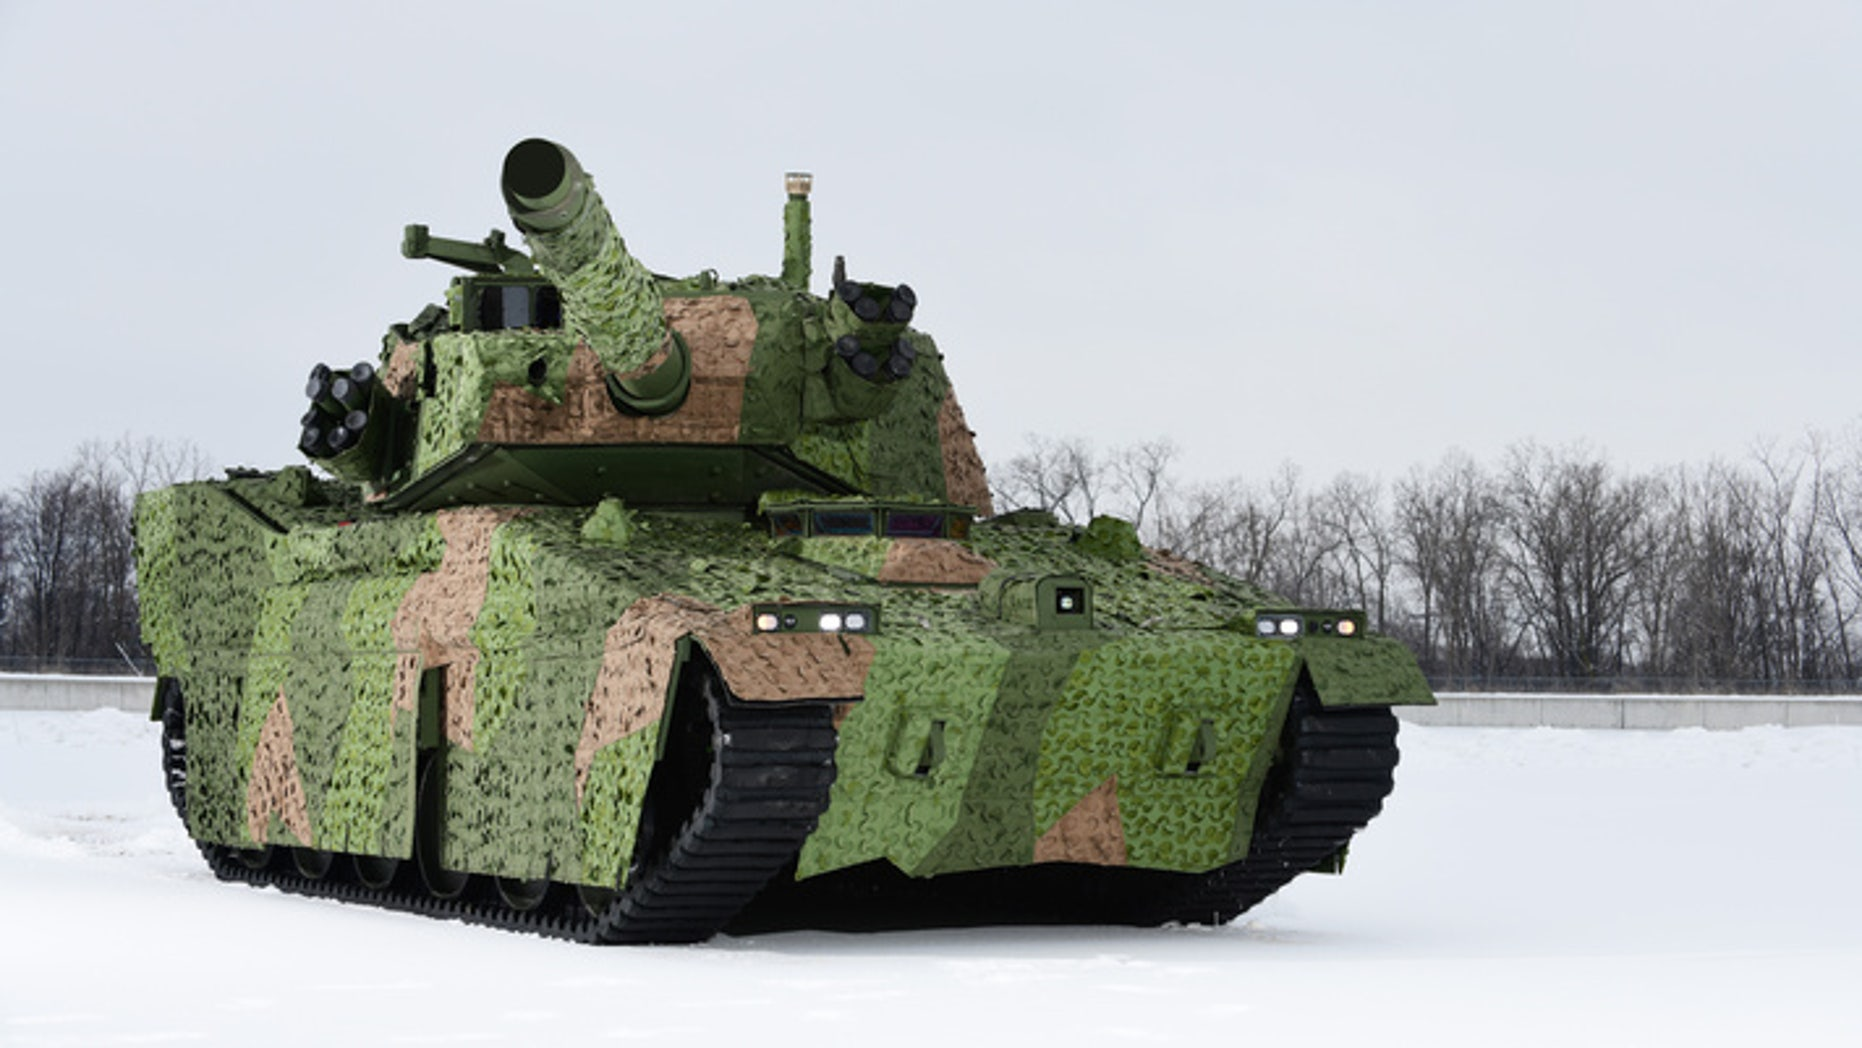 BAE Systems has submitted its proposal to the U.S. Army to build and test the Mobile Protected Firepower (MPF) vehicle (BAE Systems)